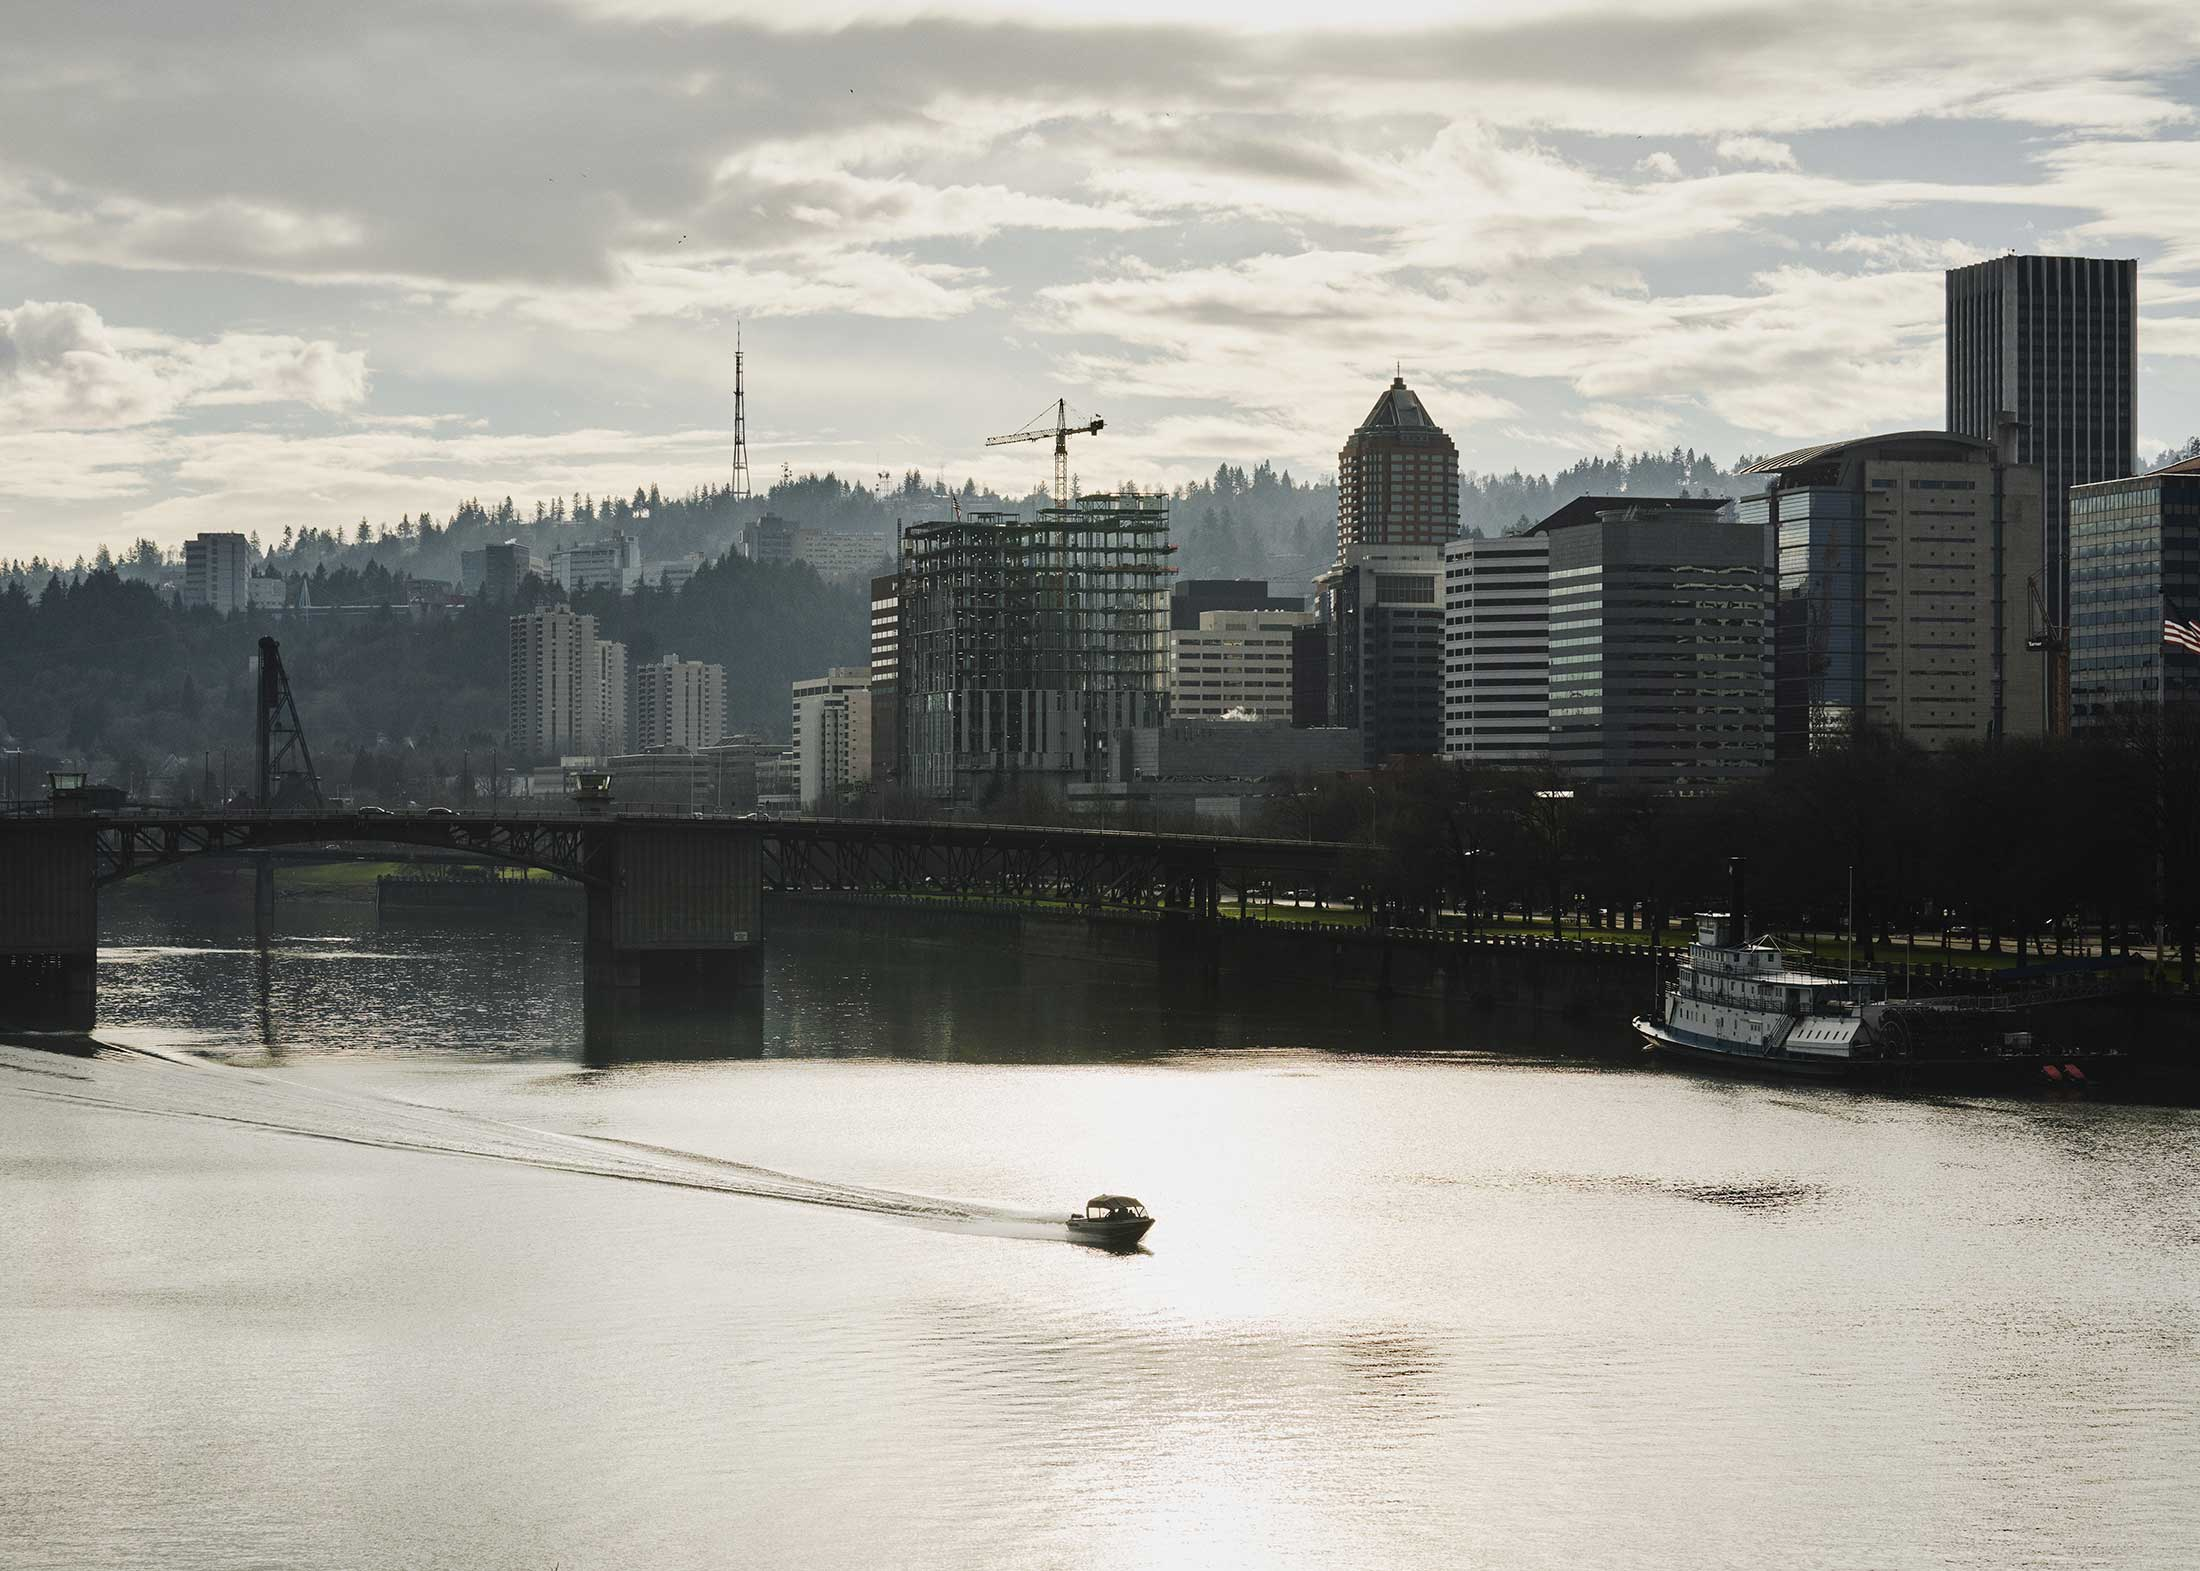 Portland's Land Rush for New 'Opportunity Zone' Tax Breaks